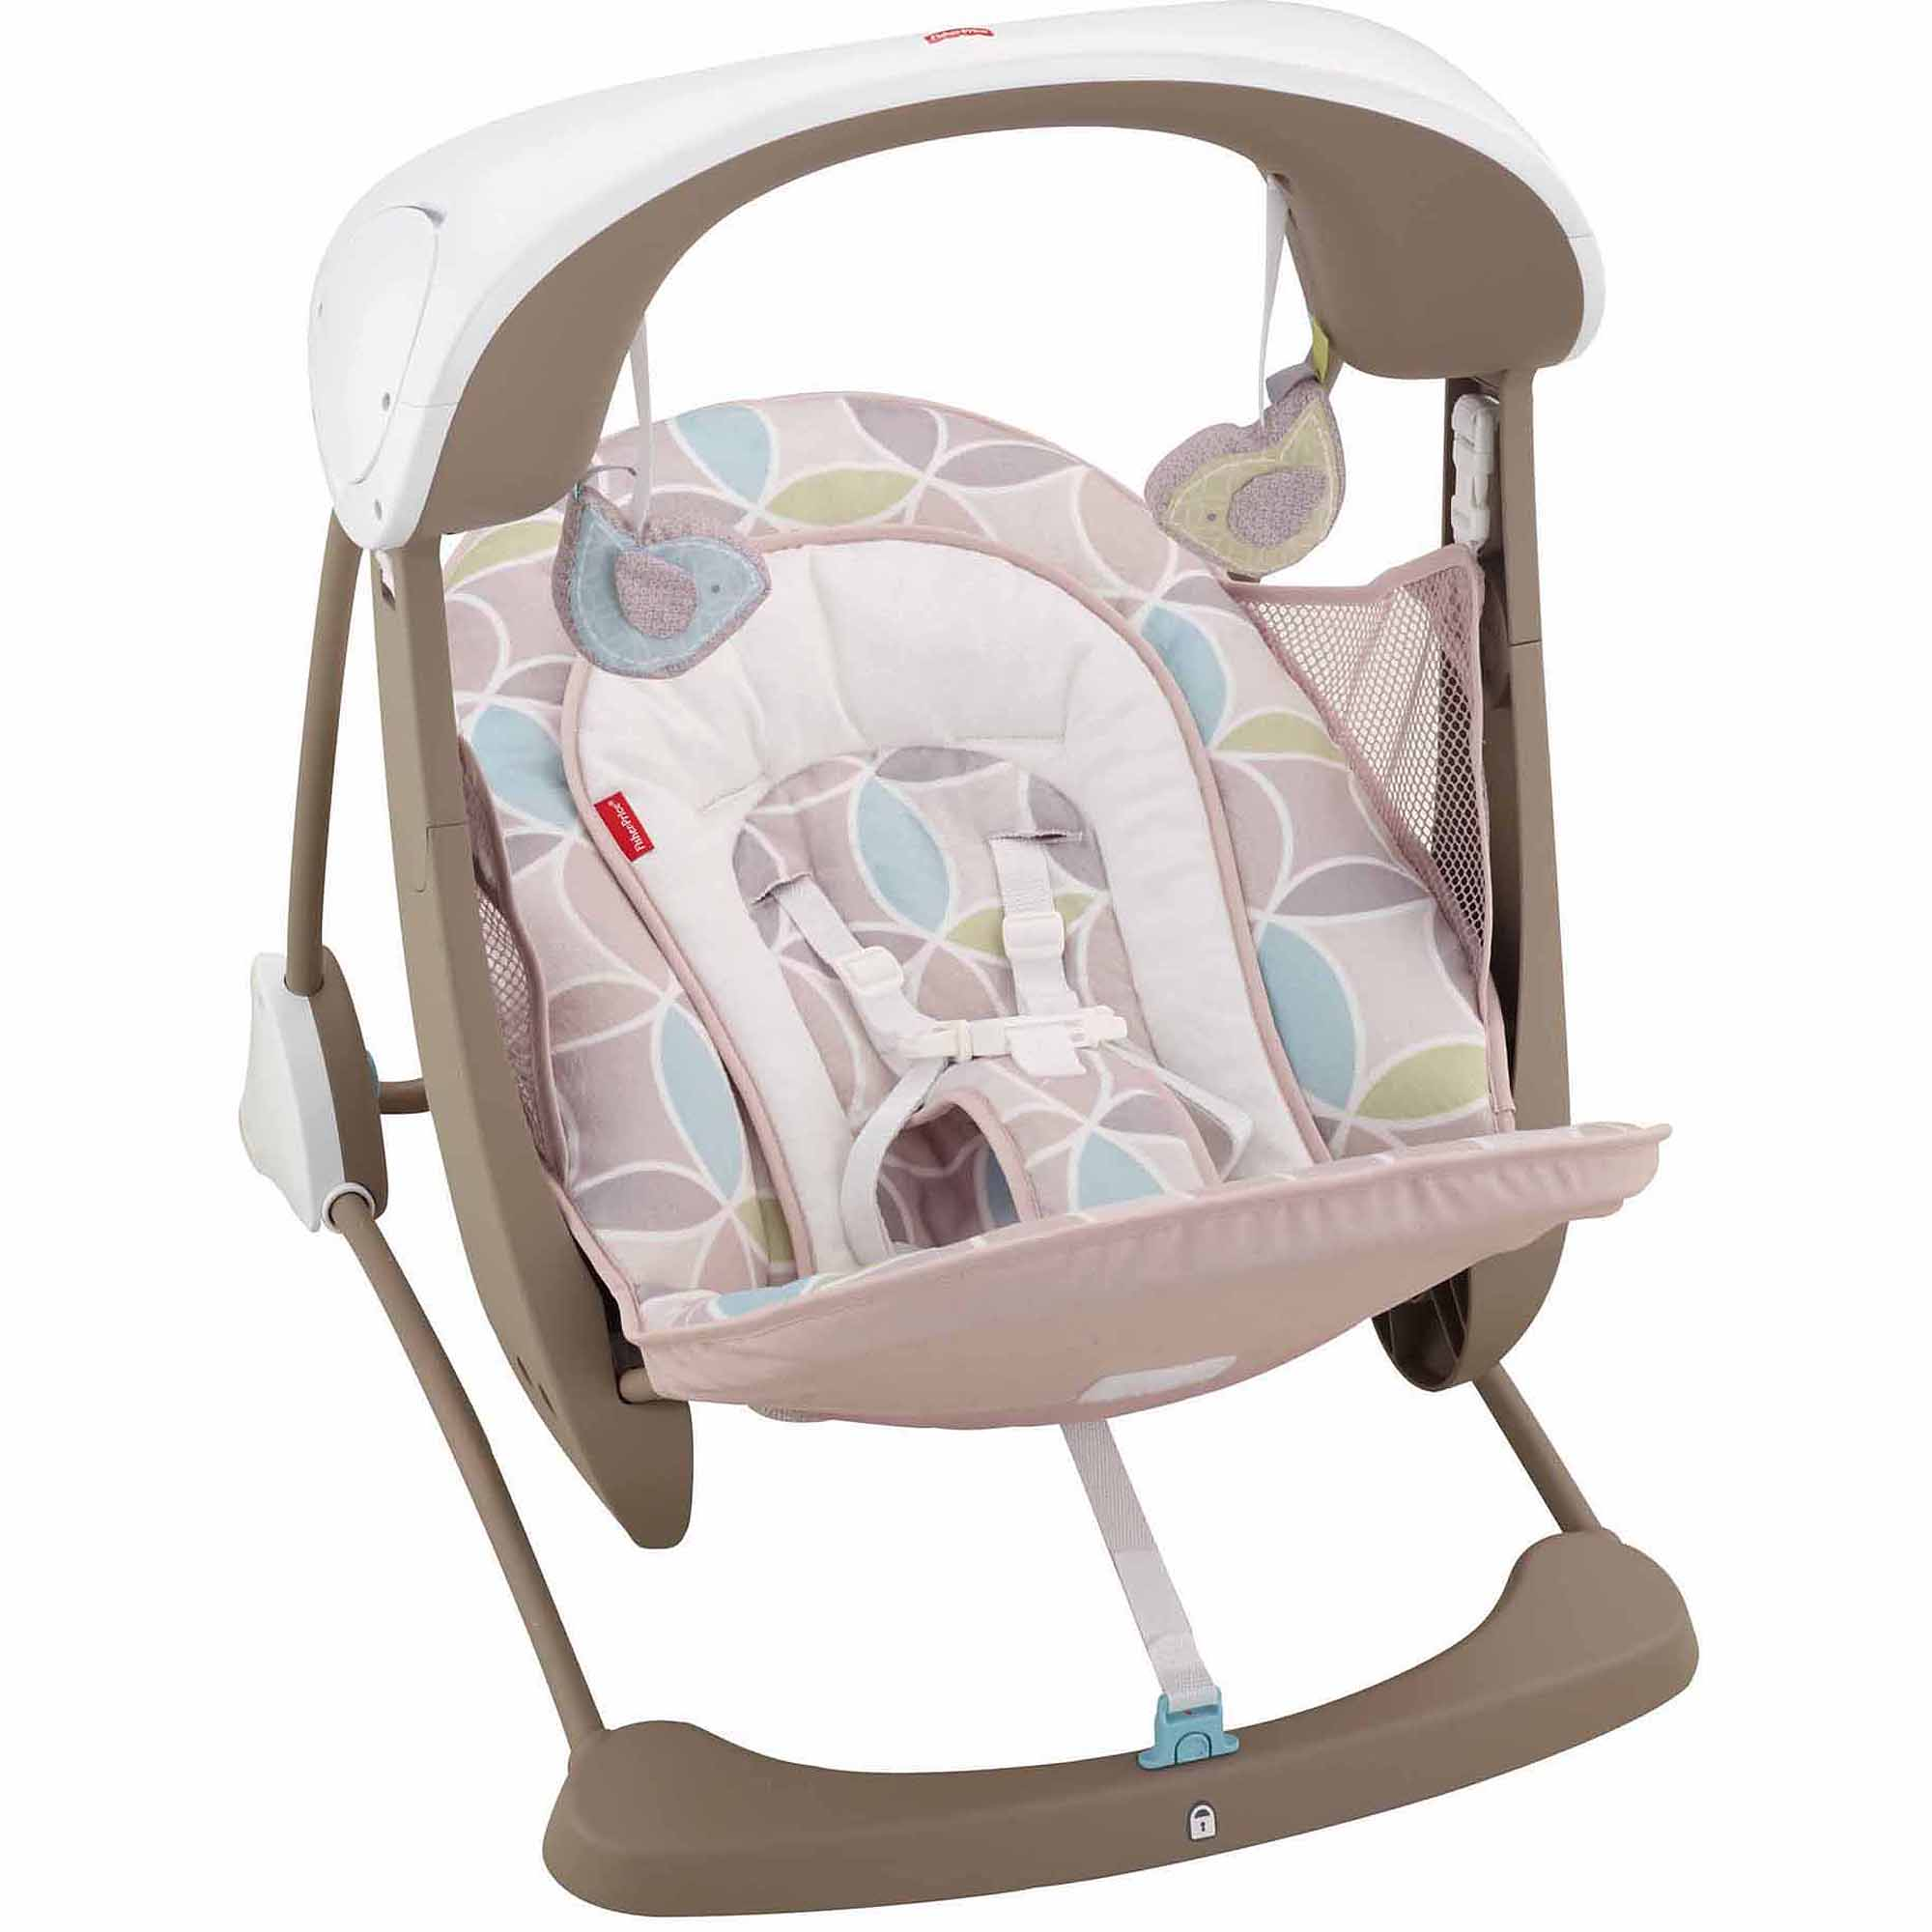 Fisher-Price Deluxe Take-Along Swing and Seat